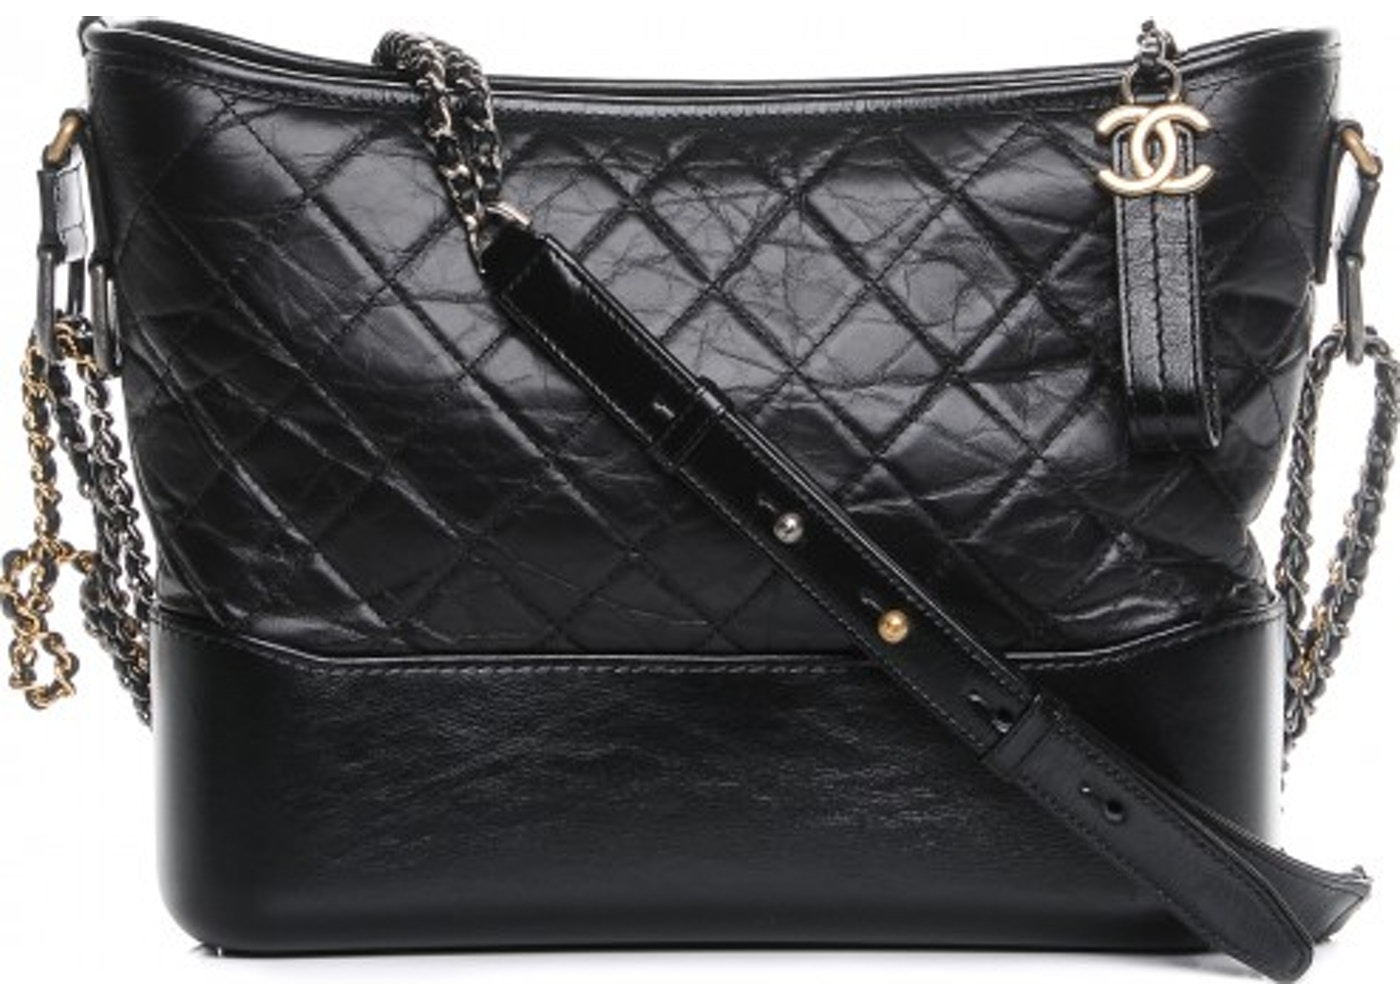 9b1ba4382019 Chanel Gabrielle Hobo Quilted Diamond Aged Medium Black. Quilted Diamond  Aged Medium Black